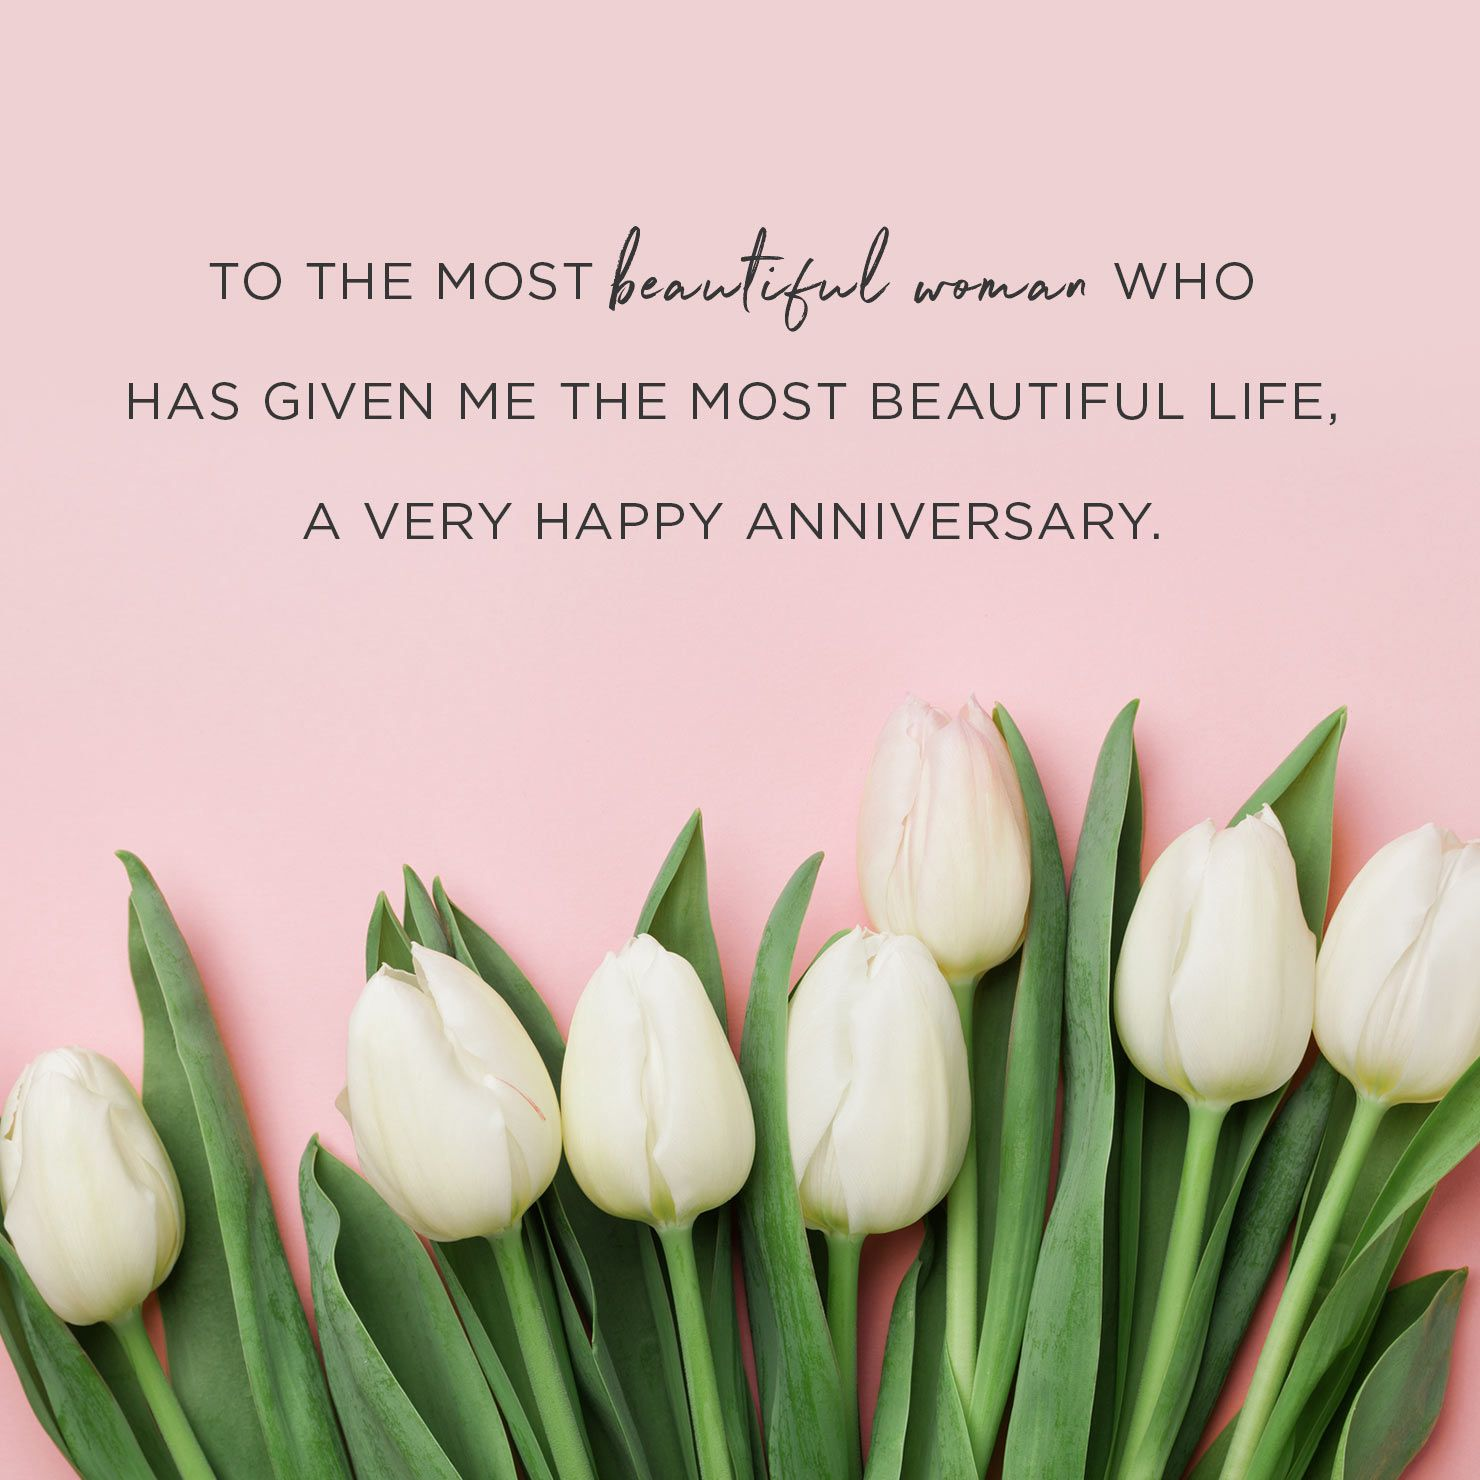 80 Heartfelt Happy Anniversary Messages With Images Shutterfly Happy Anniversary Messages Anniversary Message Happy Anniversary